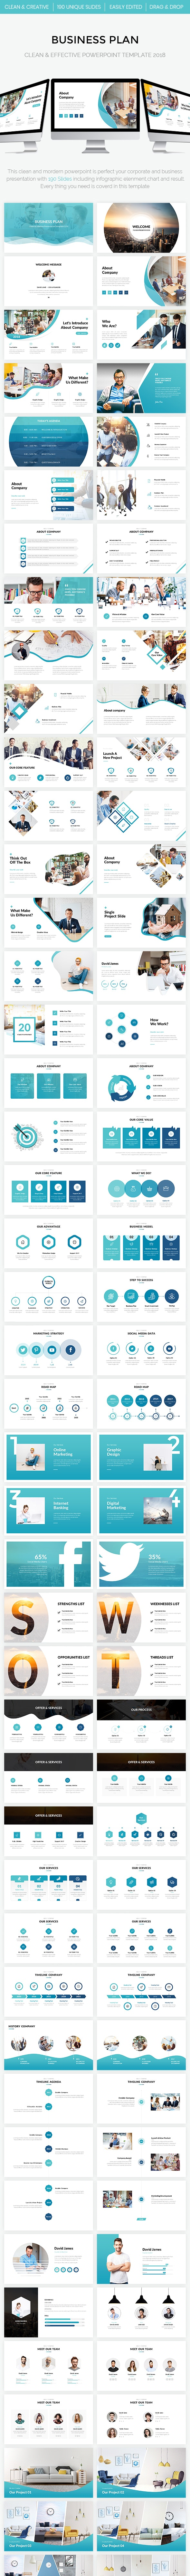 Business Plan - Clean & Effective Powerpoint Template 2018 - Business PowerPoint Templates